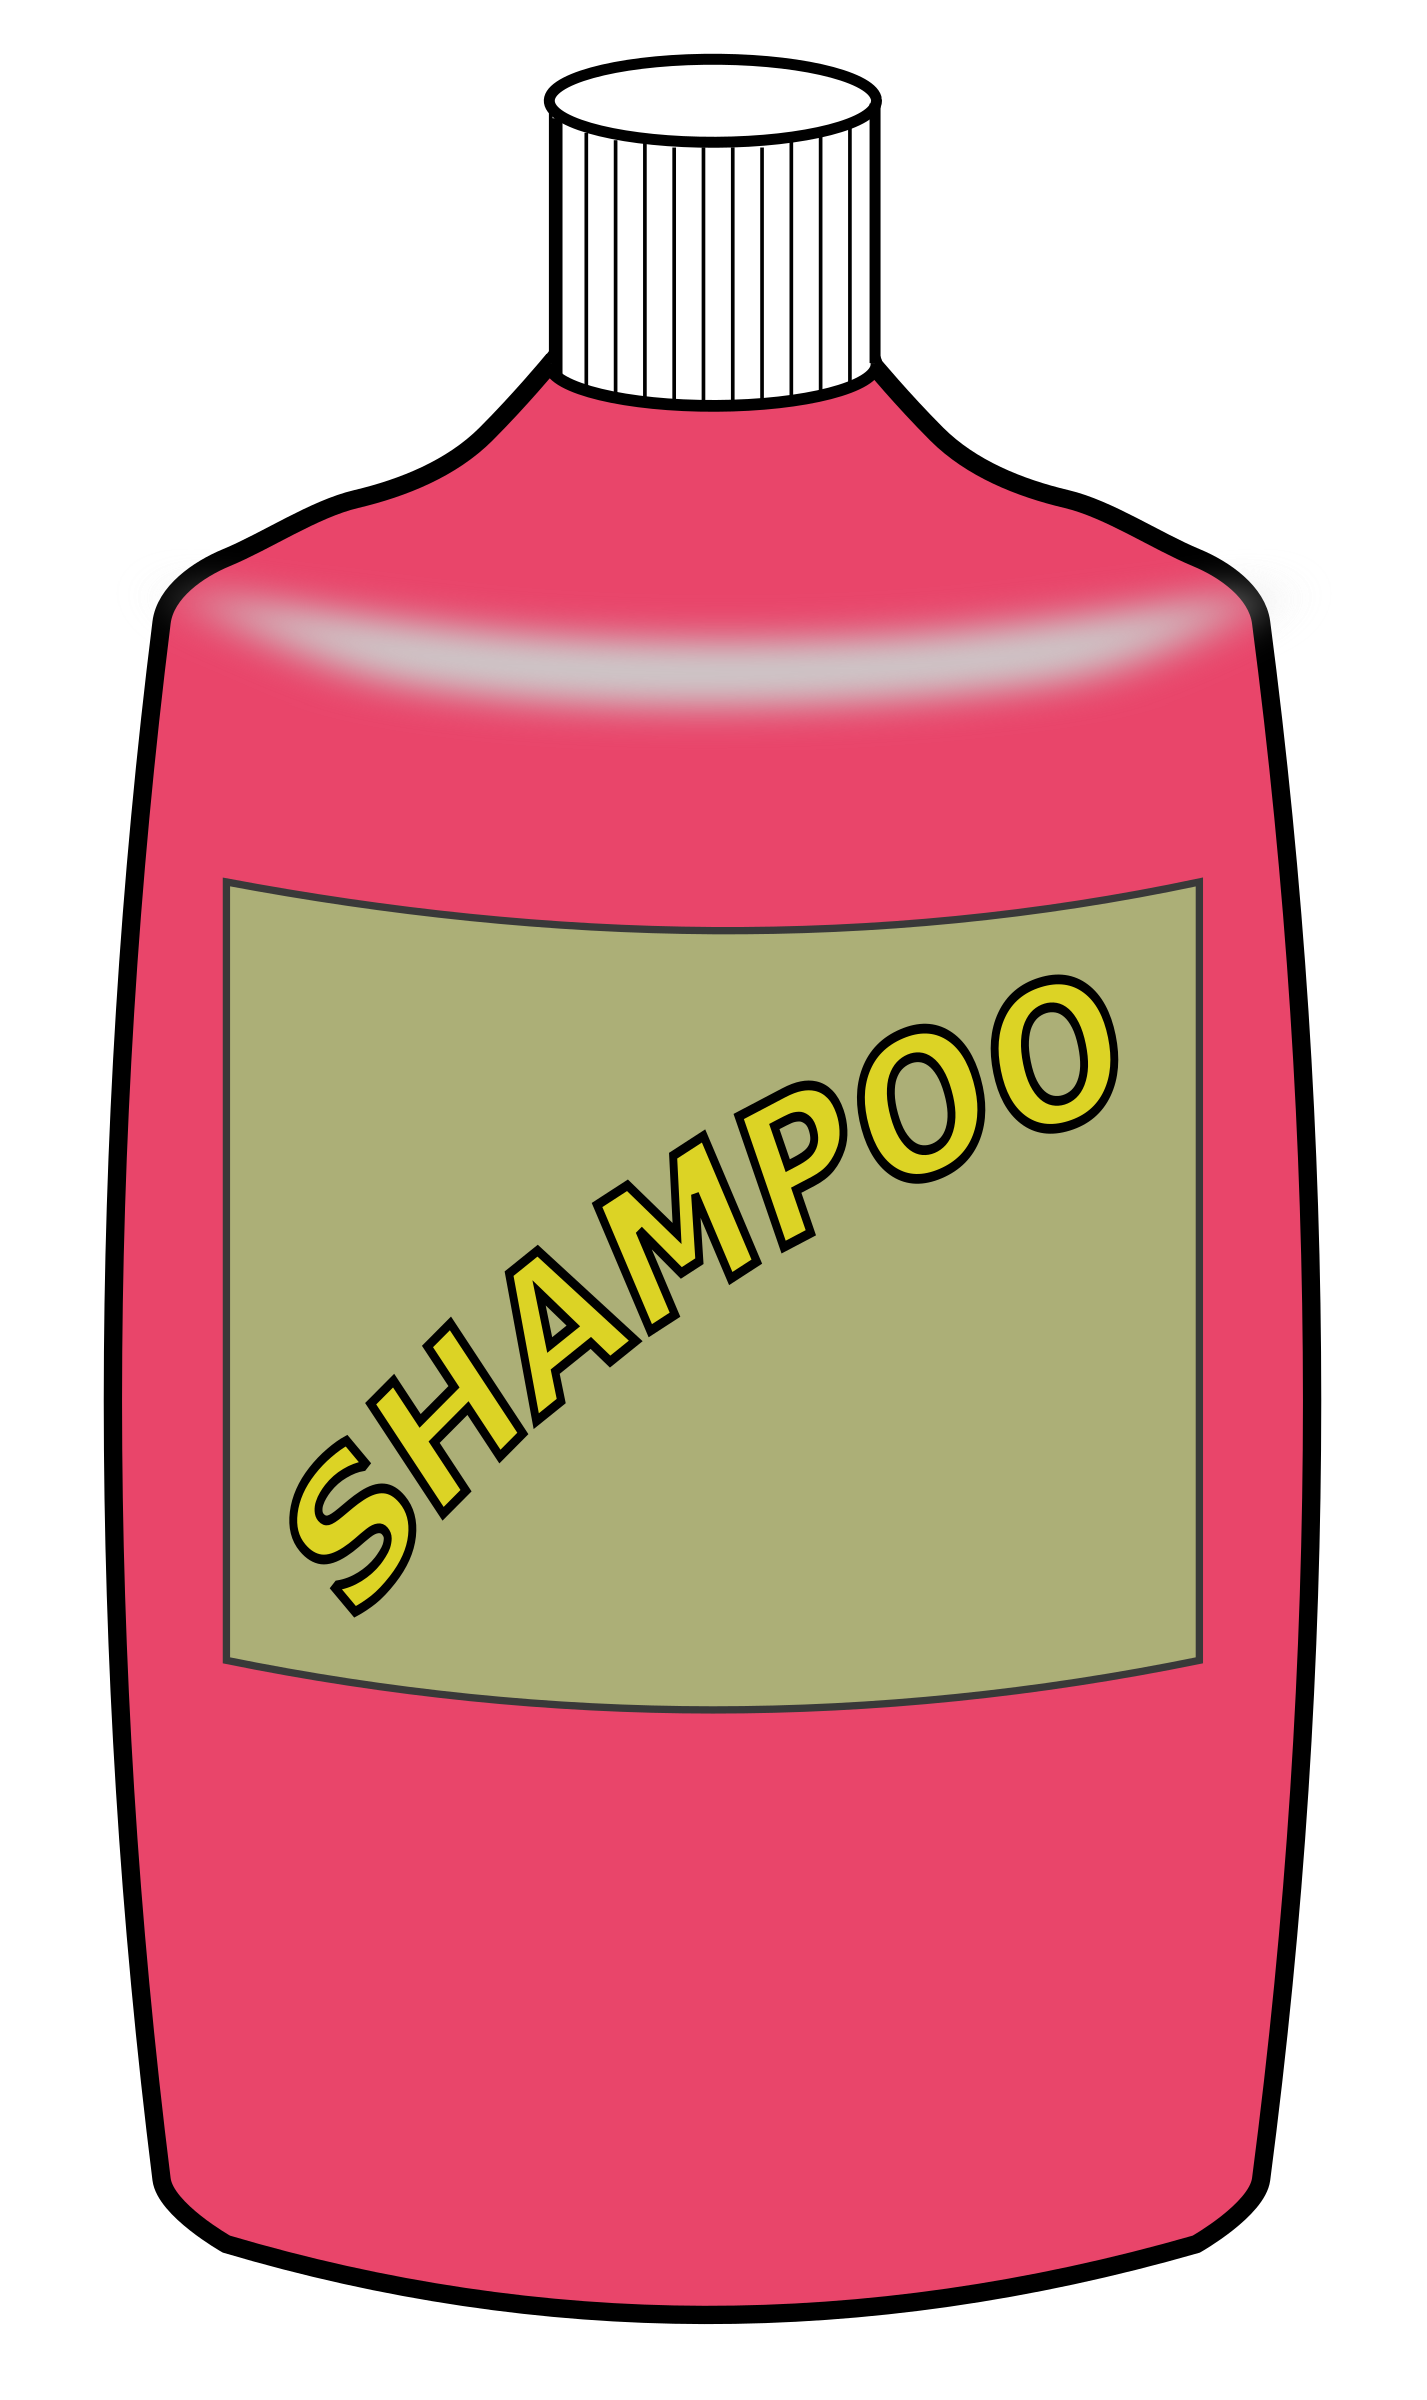 clipart big shampoo bottle rh openclipart org What Are the Sizes of Shampoo Bottles Blue Bottle Shampoo